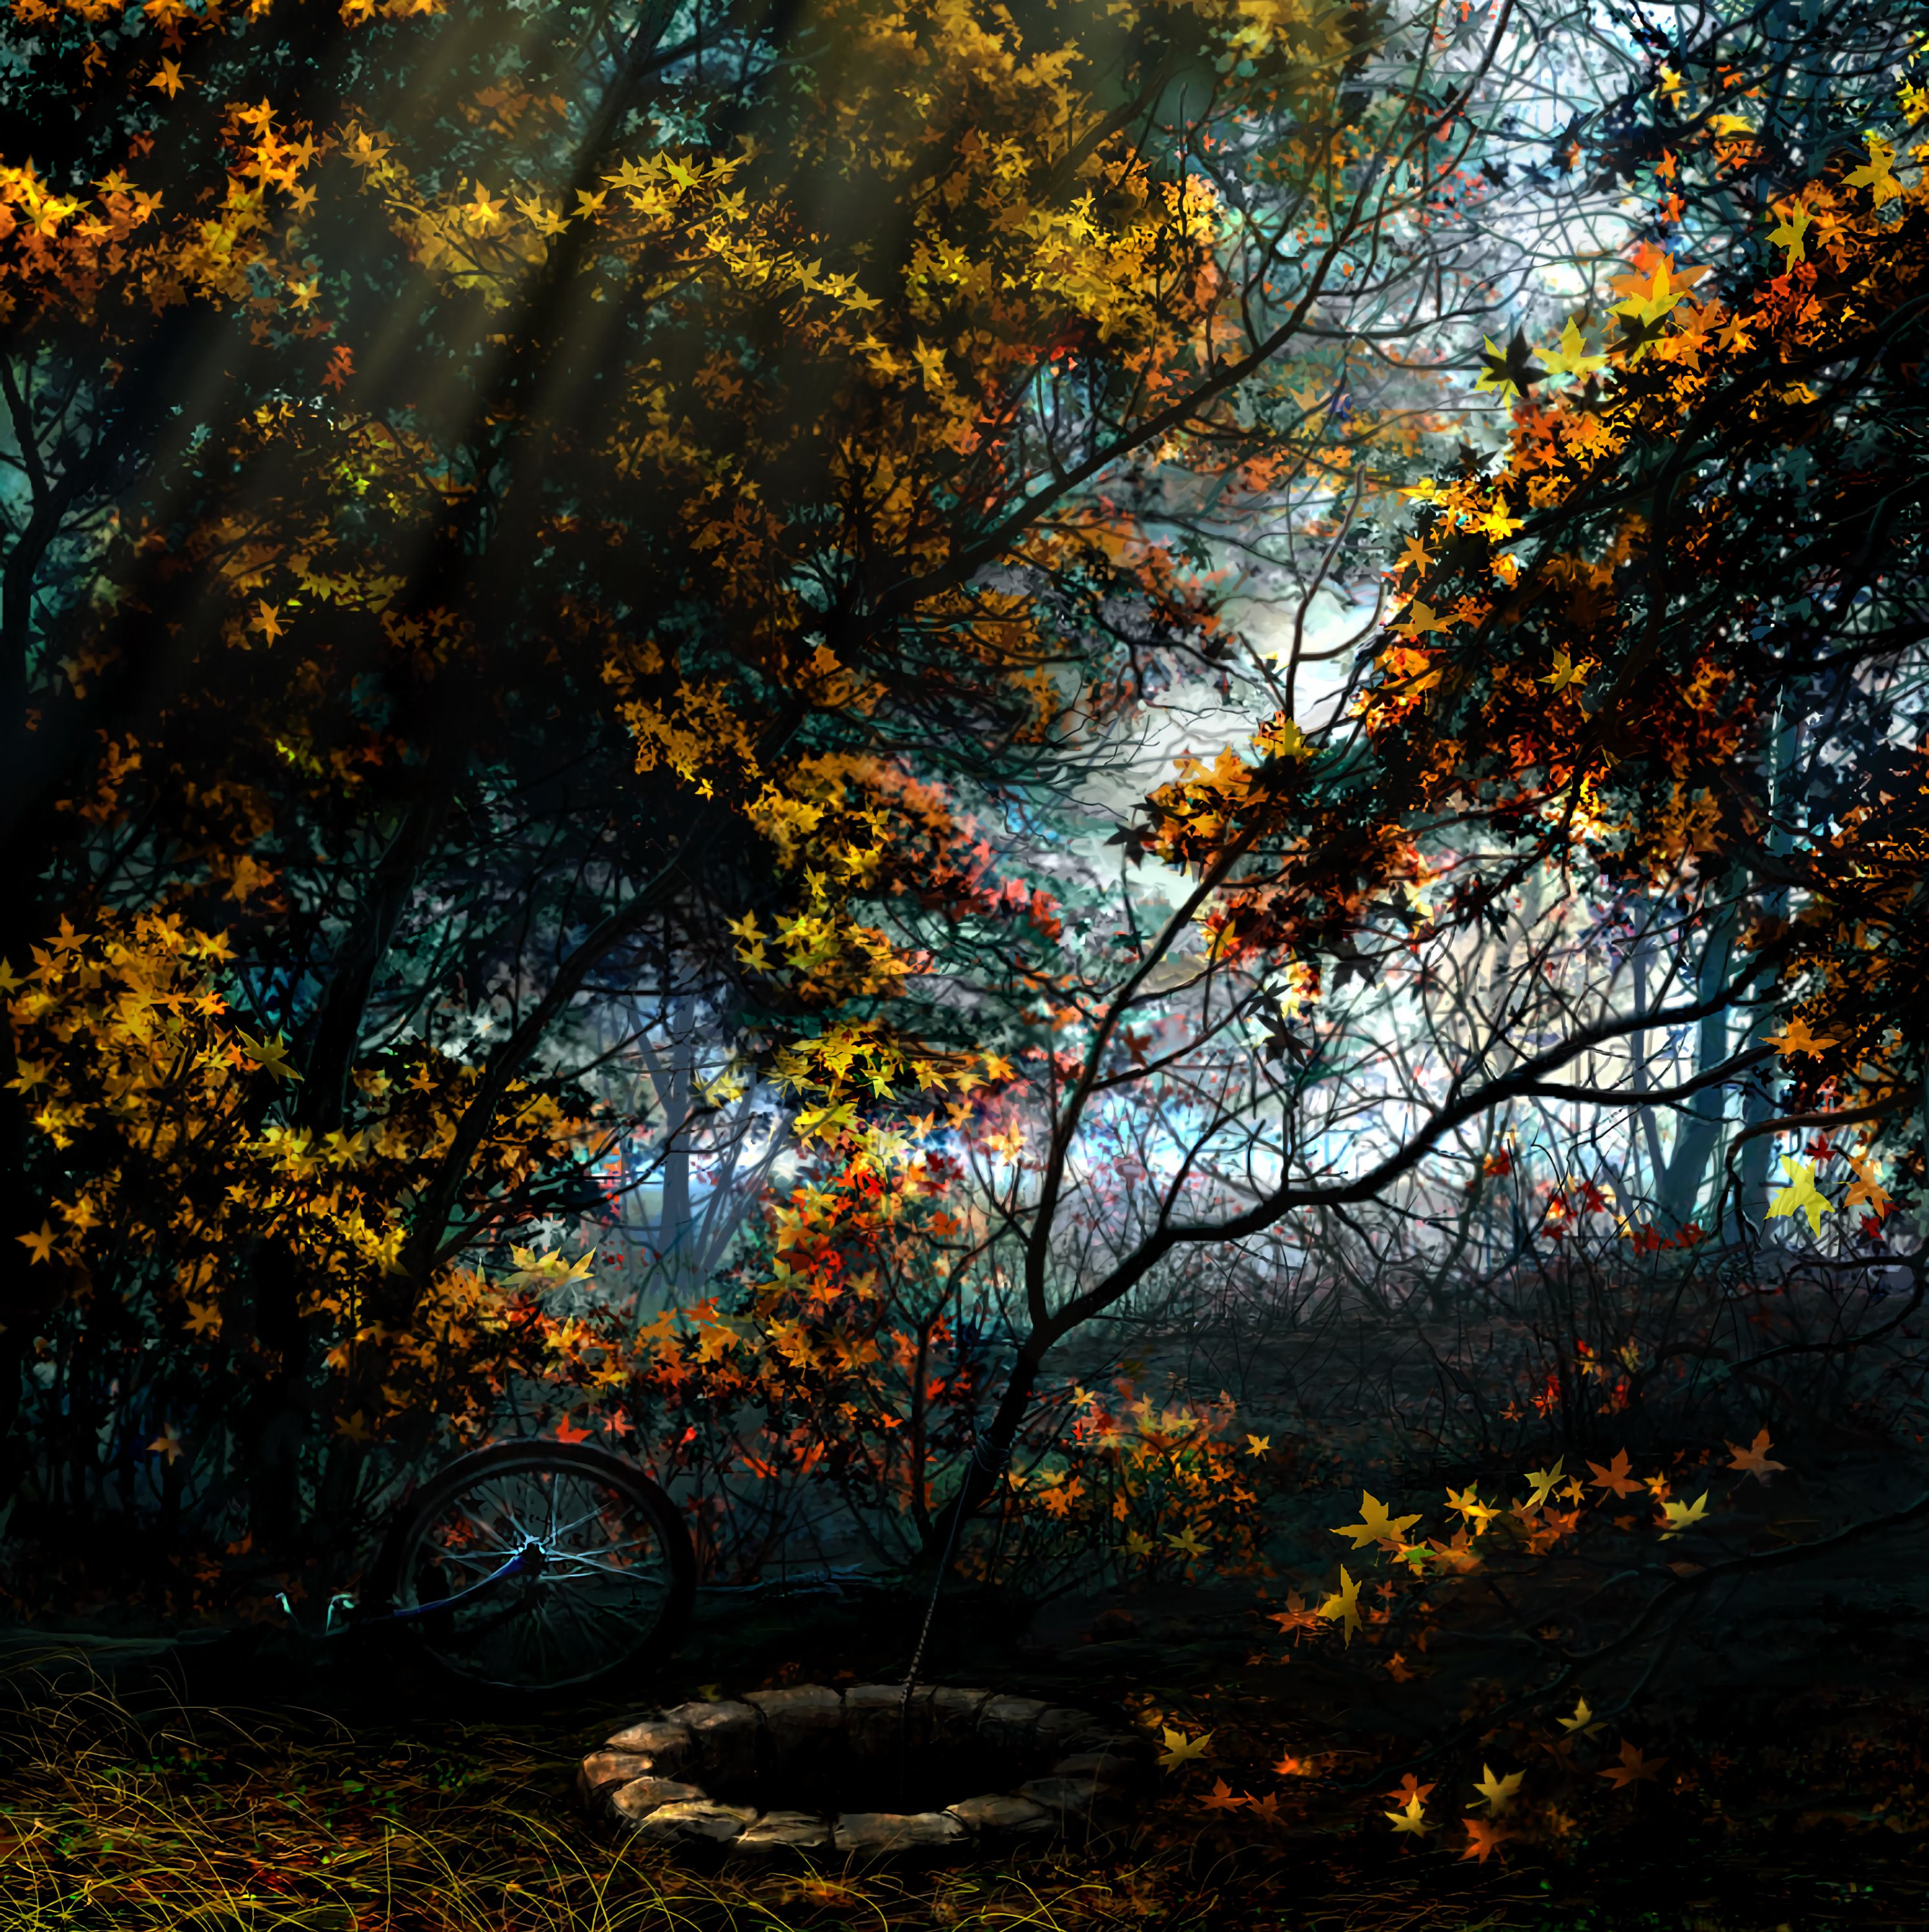 104440 download wallpaper Art, Trees, Autumn, Forest, Foliage, Bicycle, Well screensavers and pictures for free